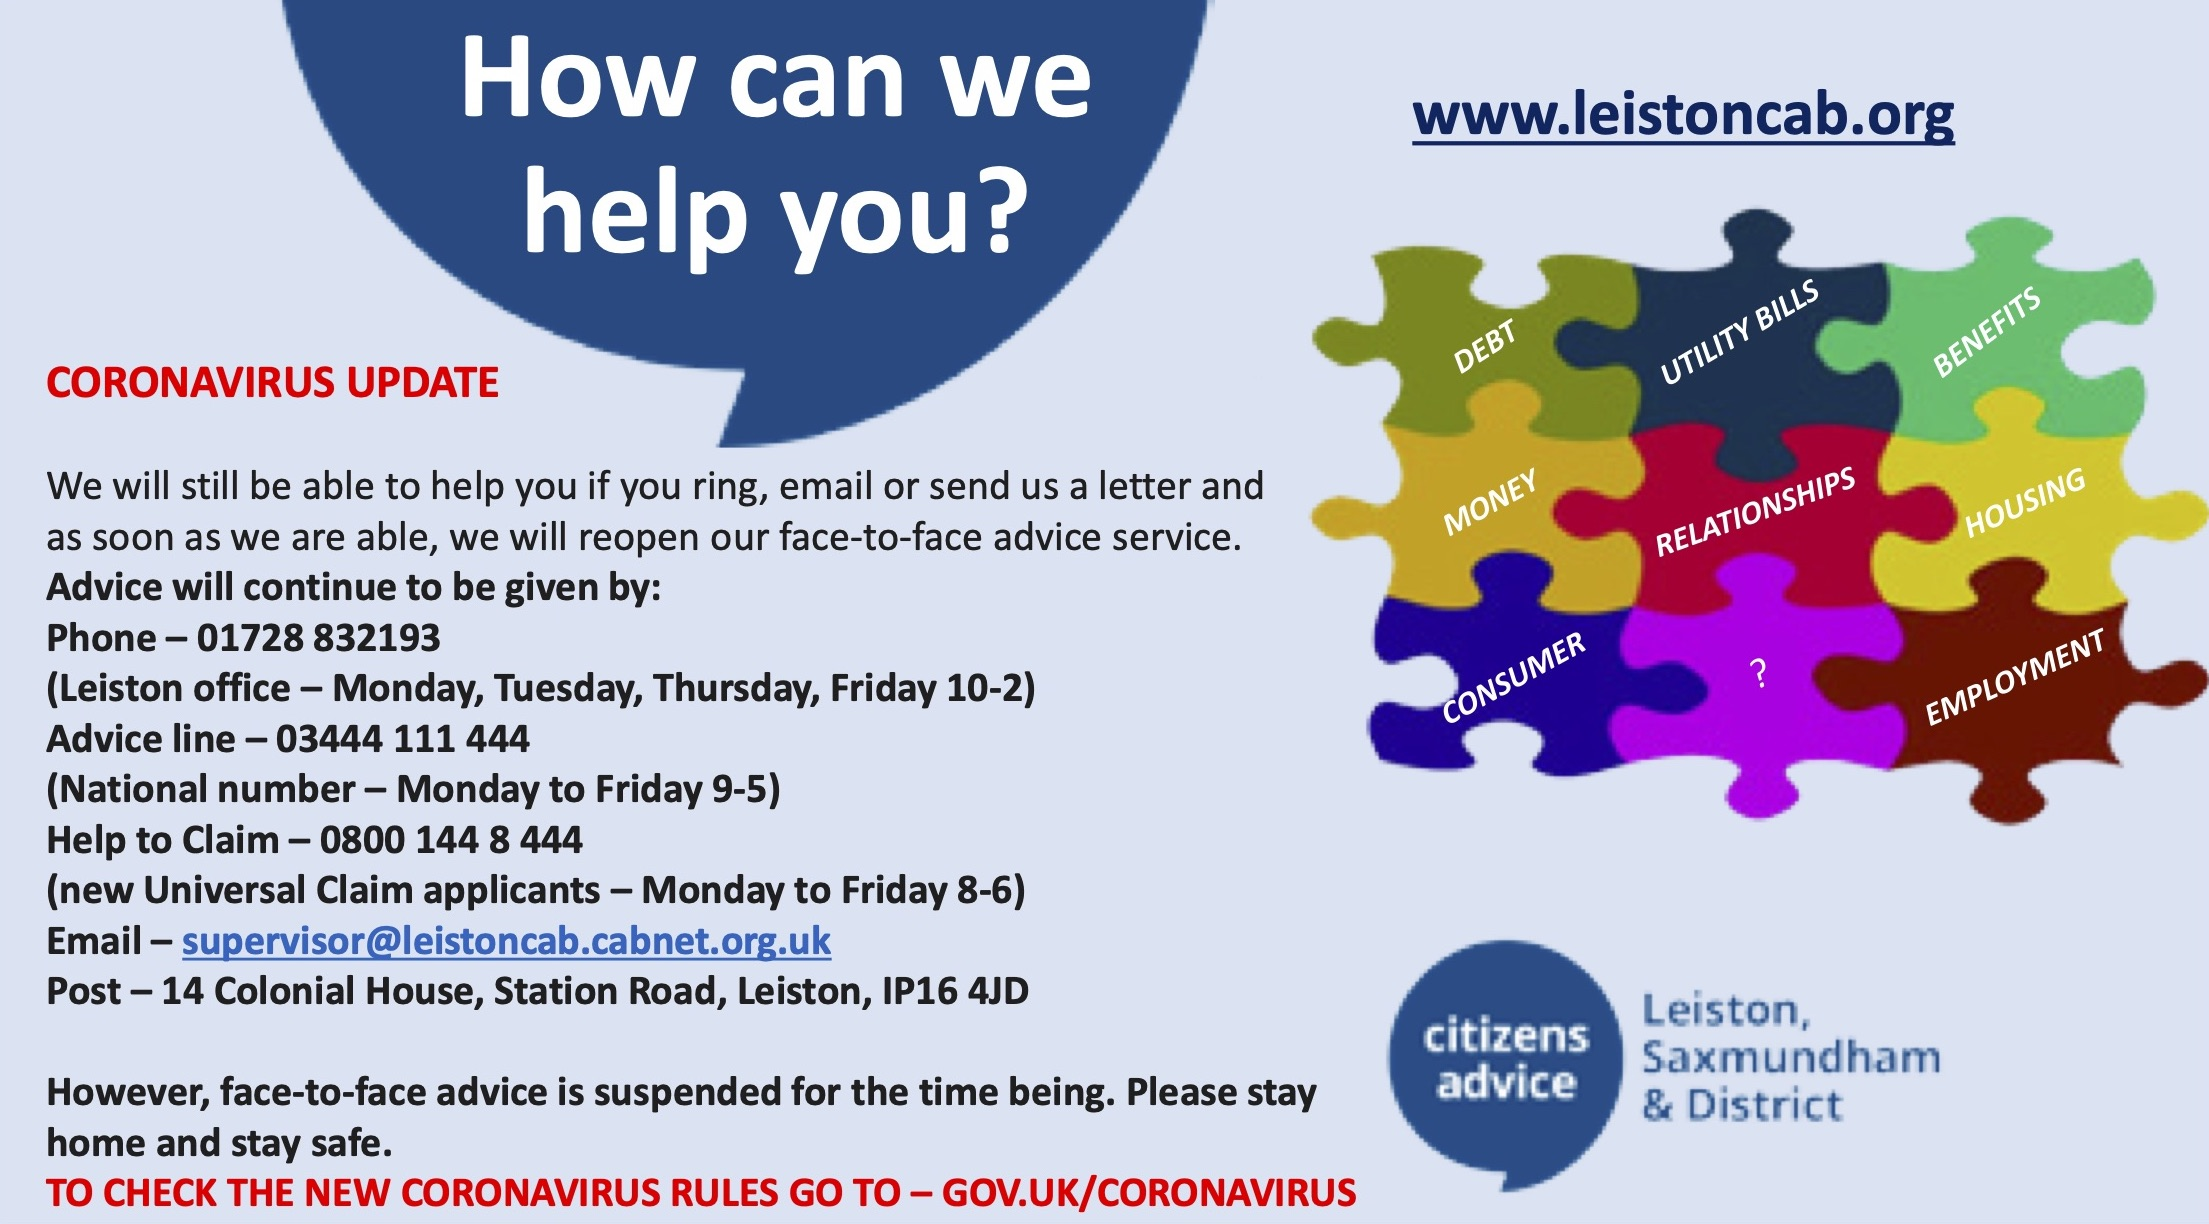 Leiston Citizens' Advice Bureau 832 193